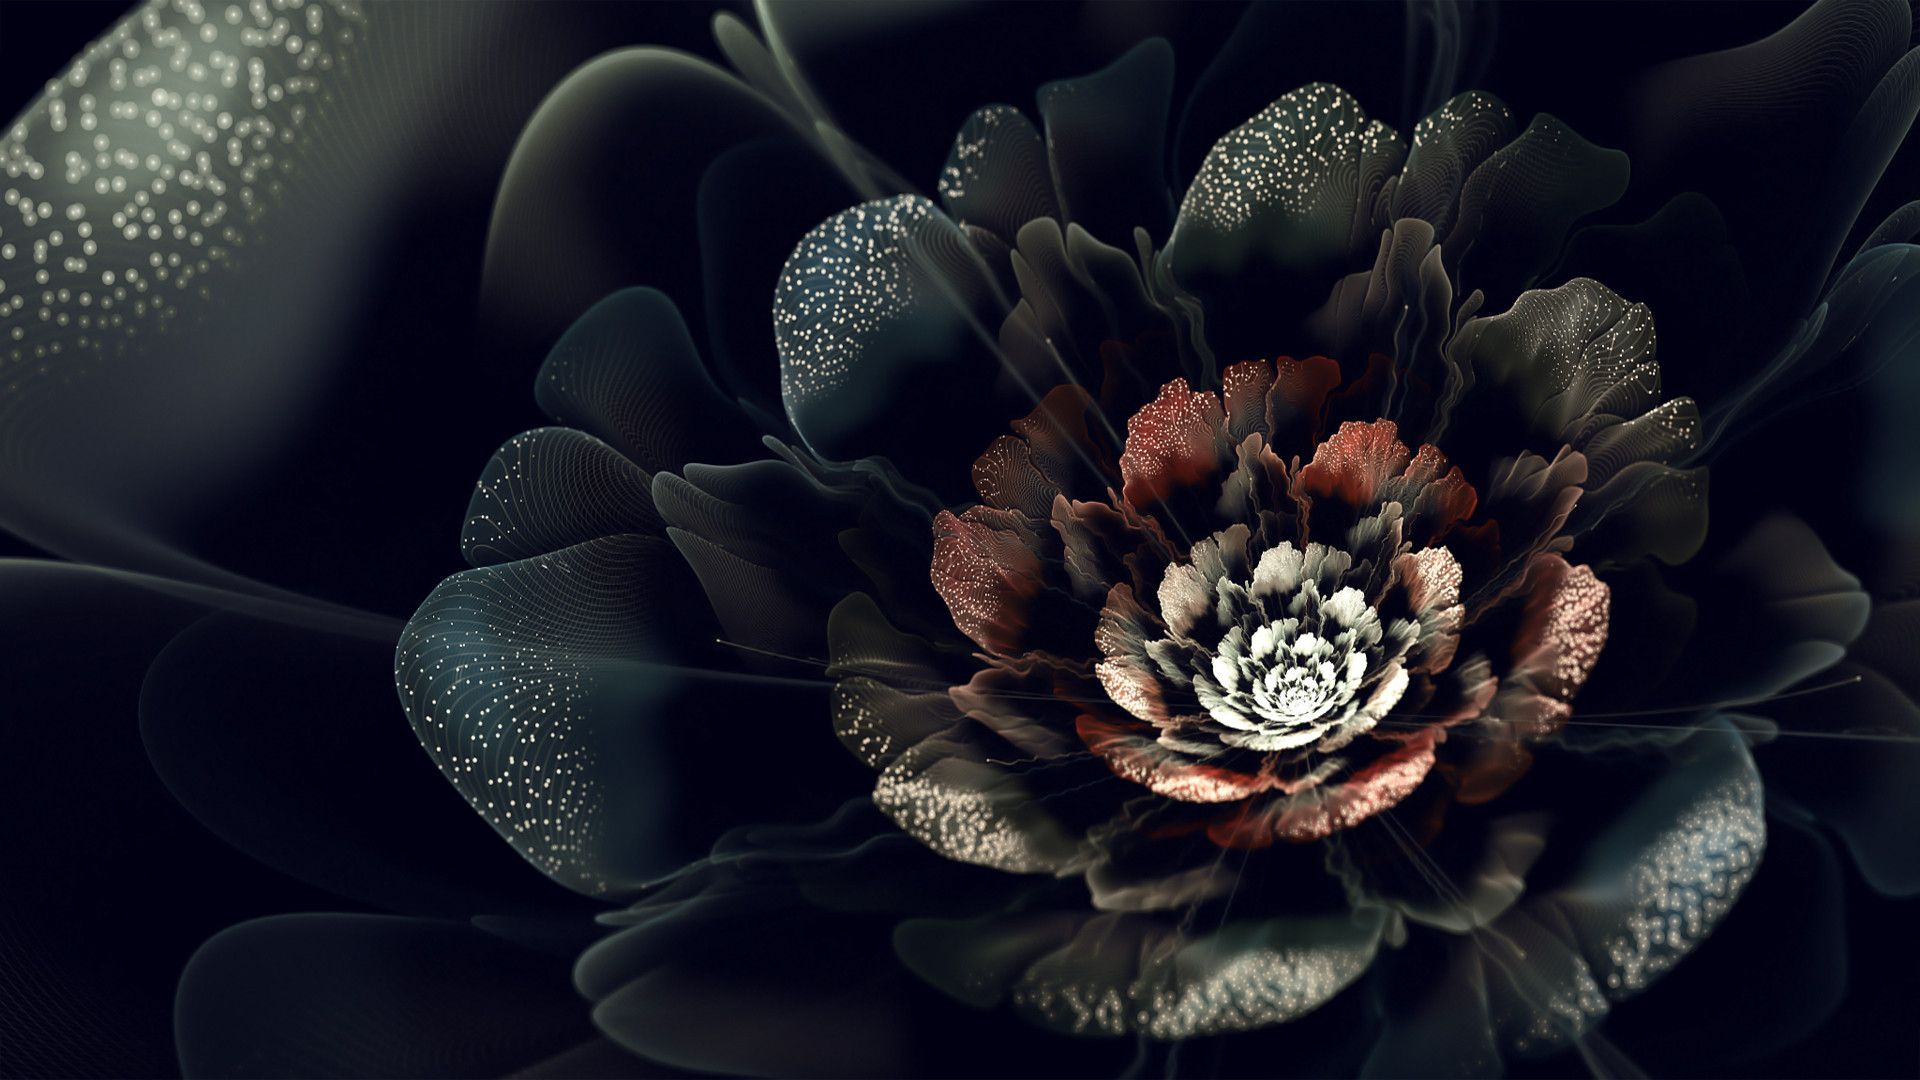 Black Rose Flower Wallpaper Find Best Latest Black Rose